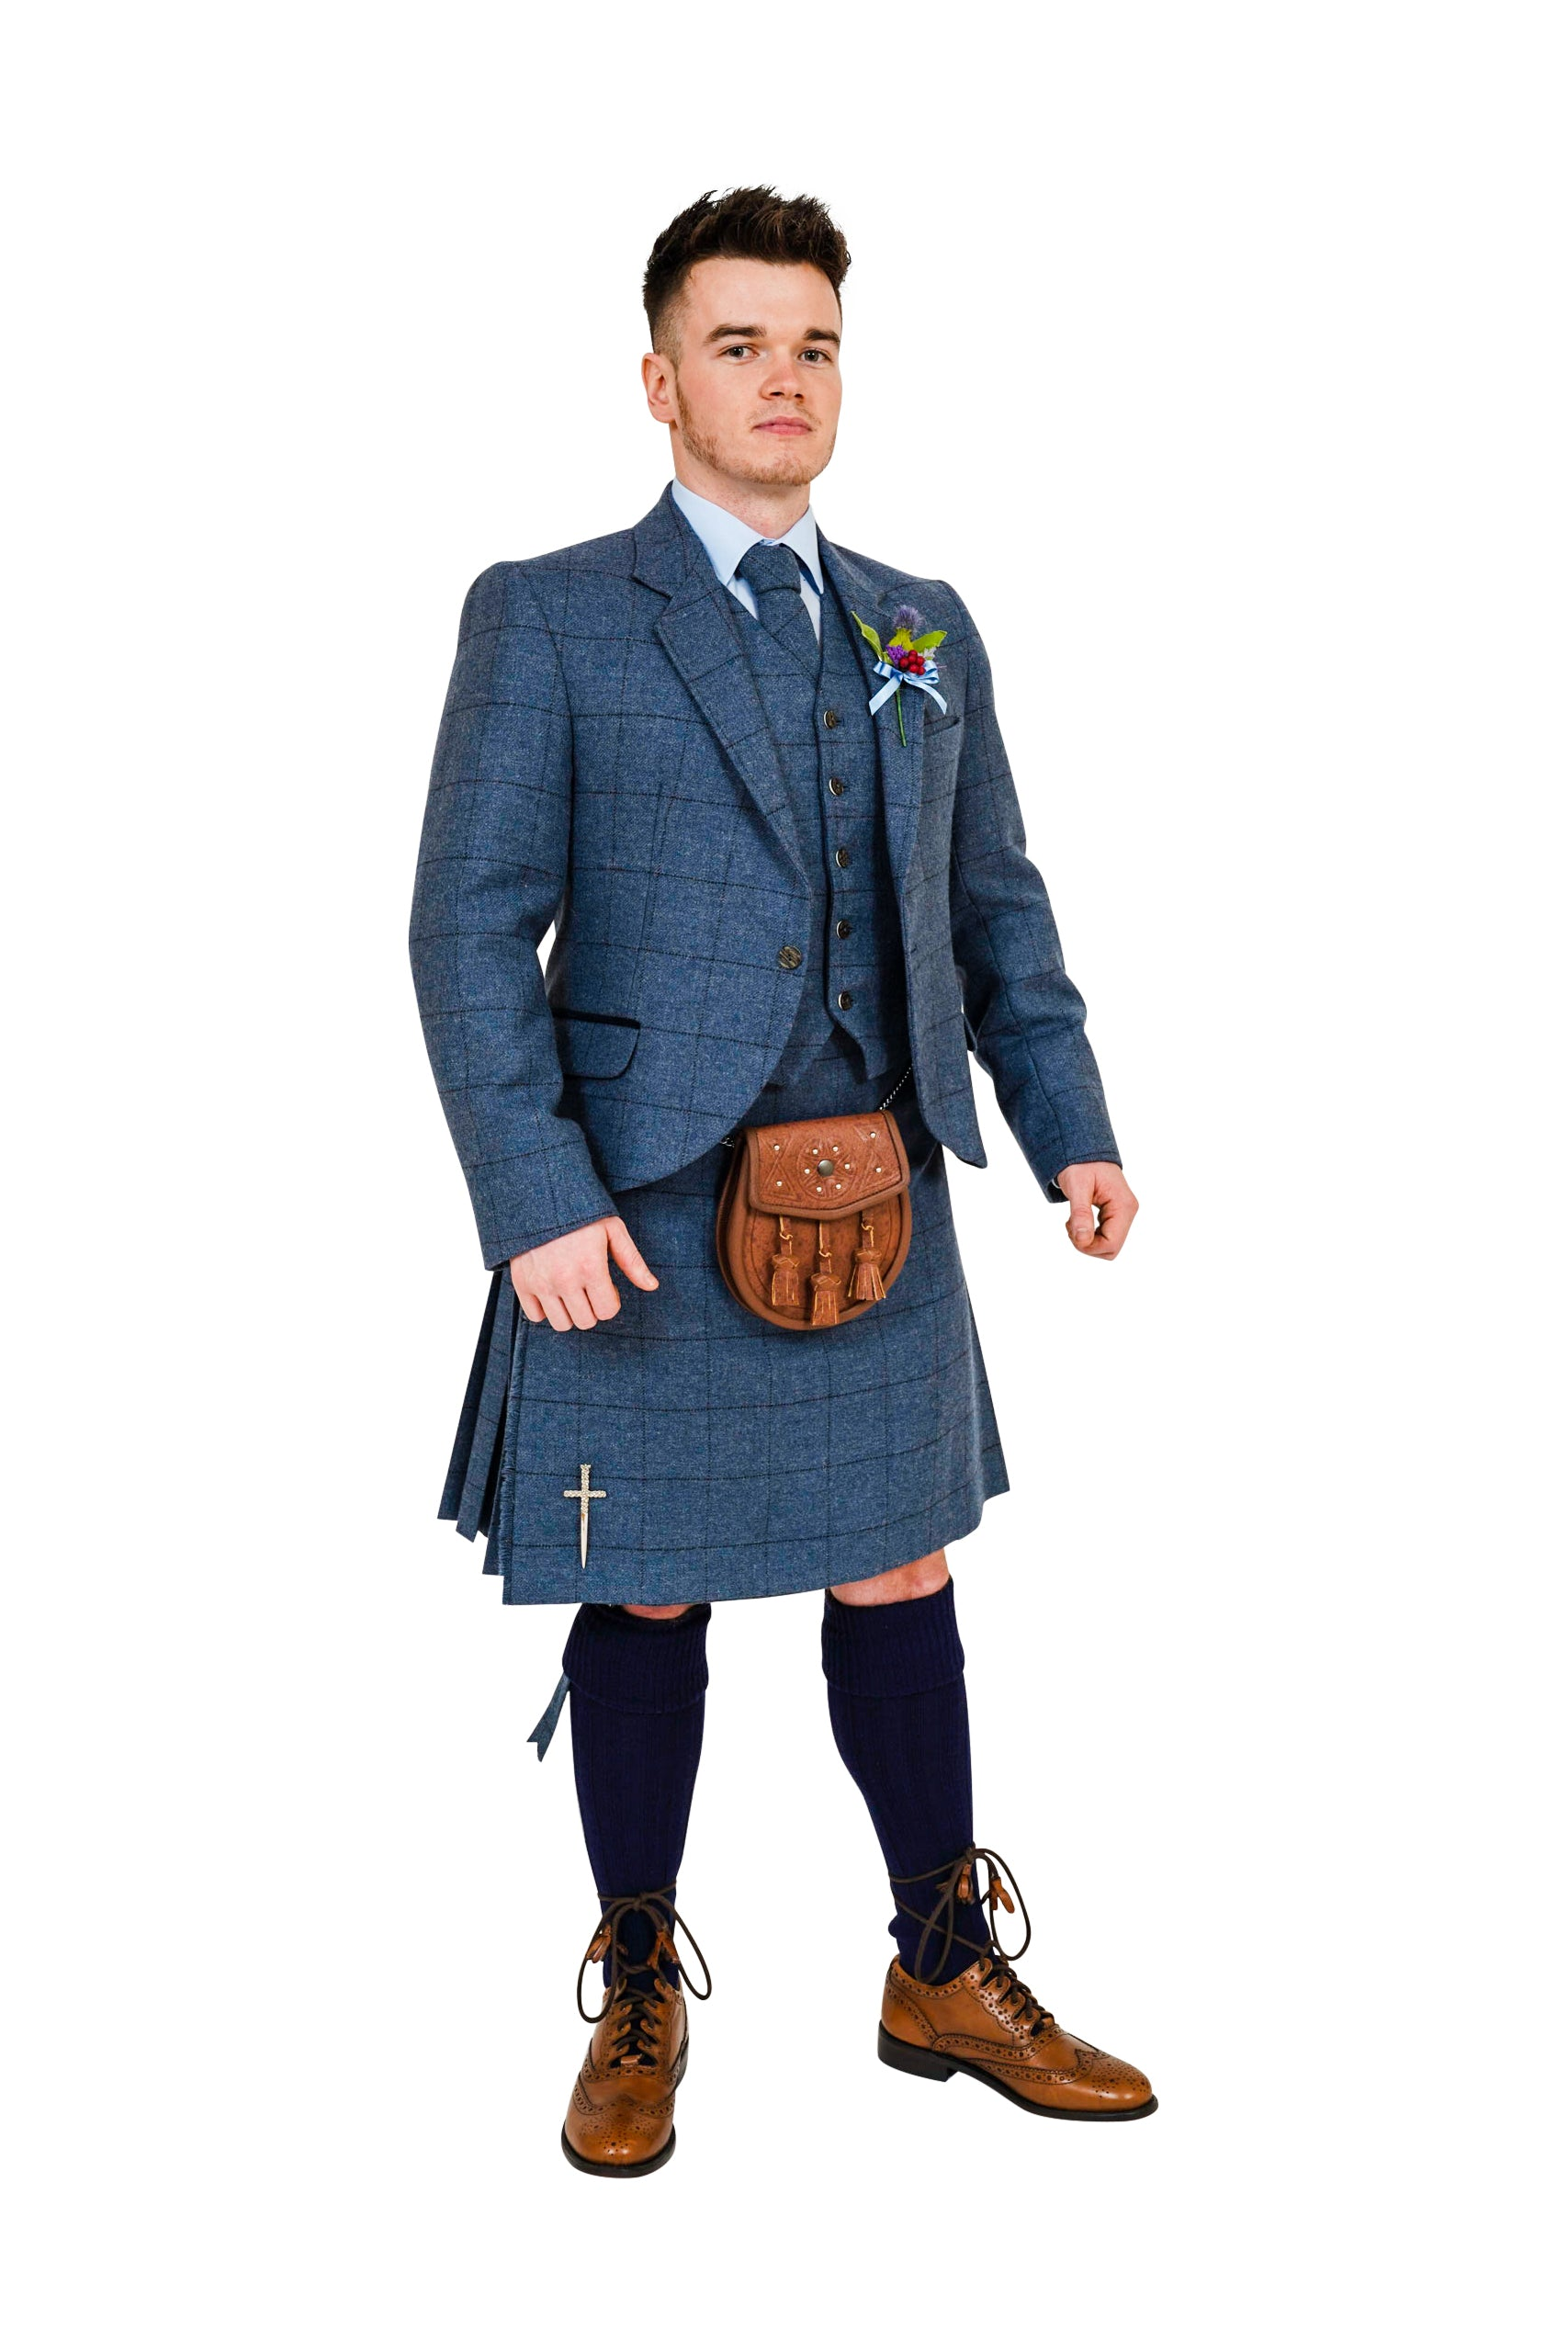 Cairngorm Blue tweed kilt hire outfit  from Anderson Kilts Dumfries image 2